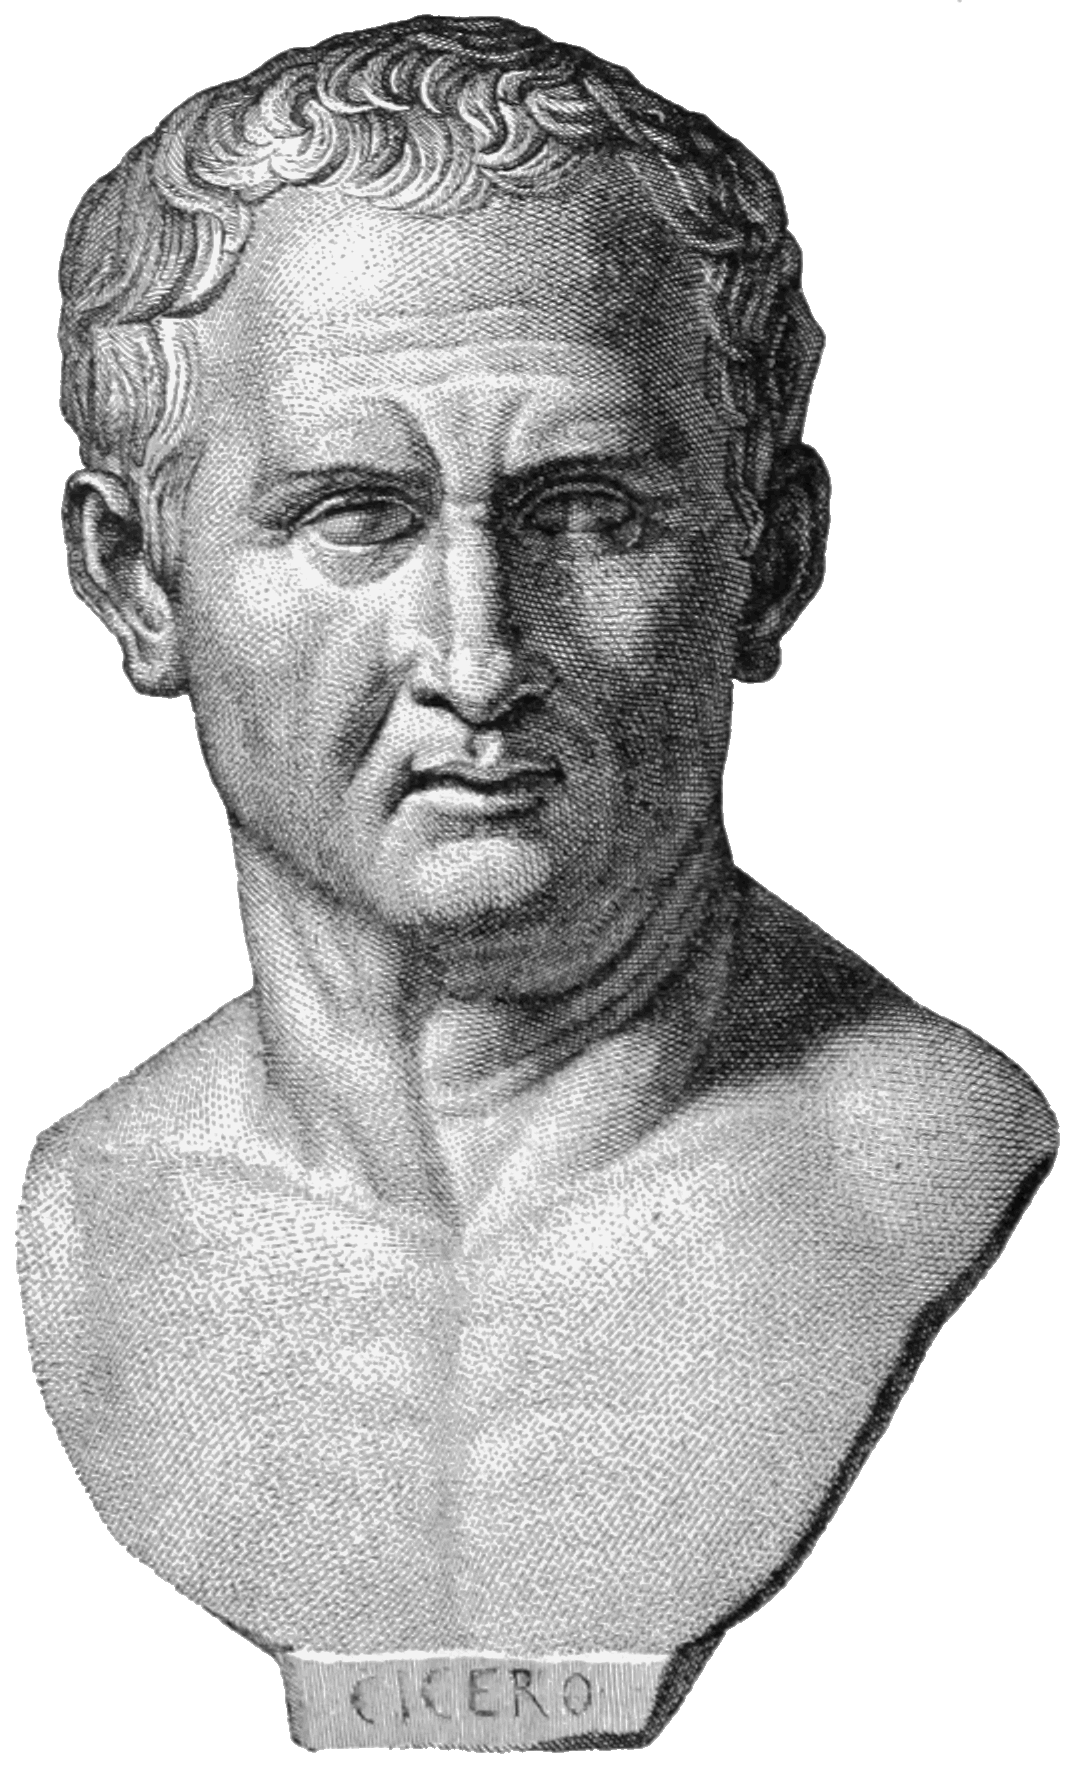 Drawing of a bust of Cicero. Published in Monuments of Classical Antiquity by Baumeister (1885) Volume I., page 396.